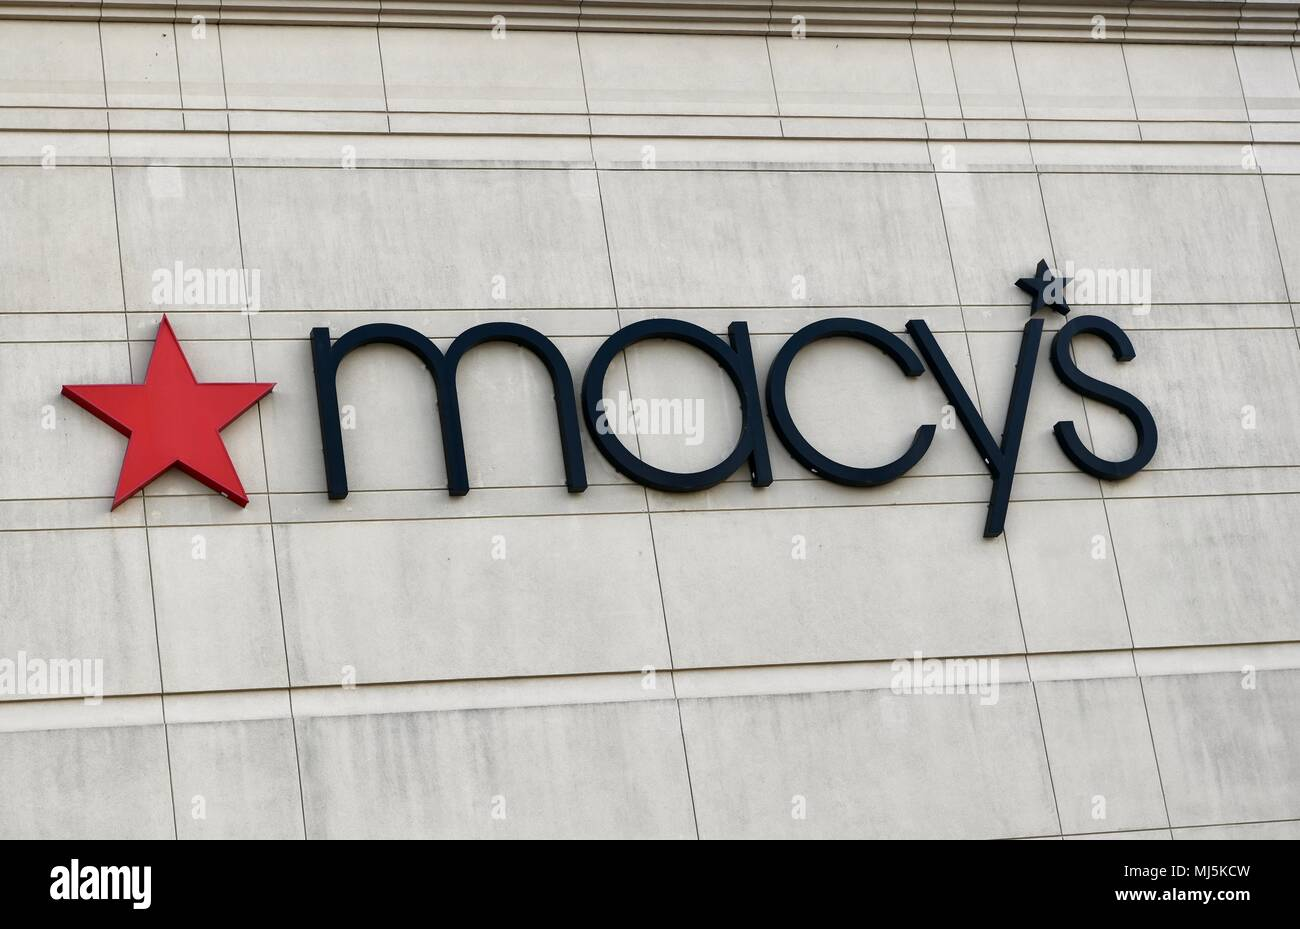 Macys Department Store In Columbia Md Usa Stock Photo 183292505